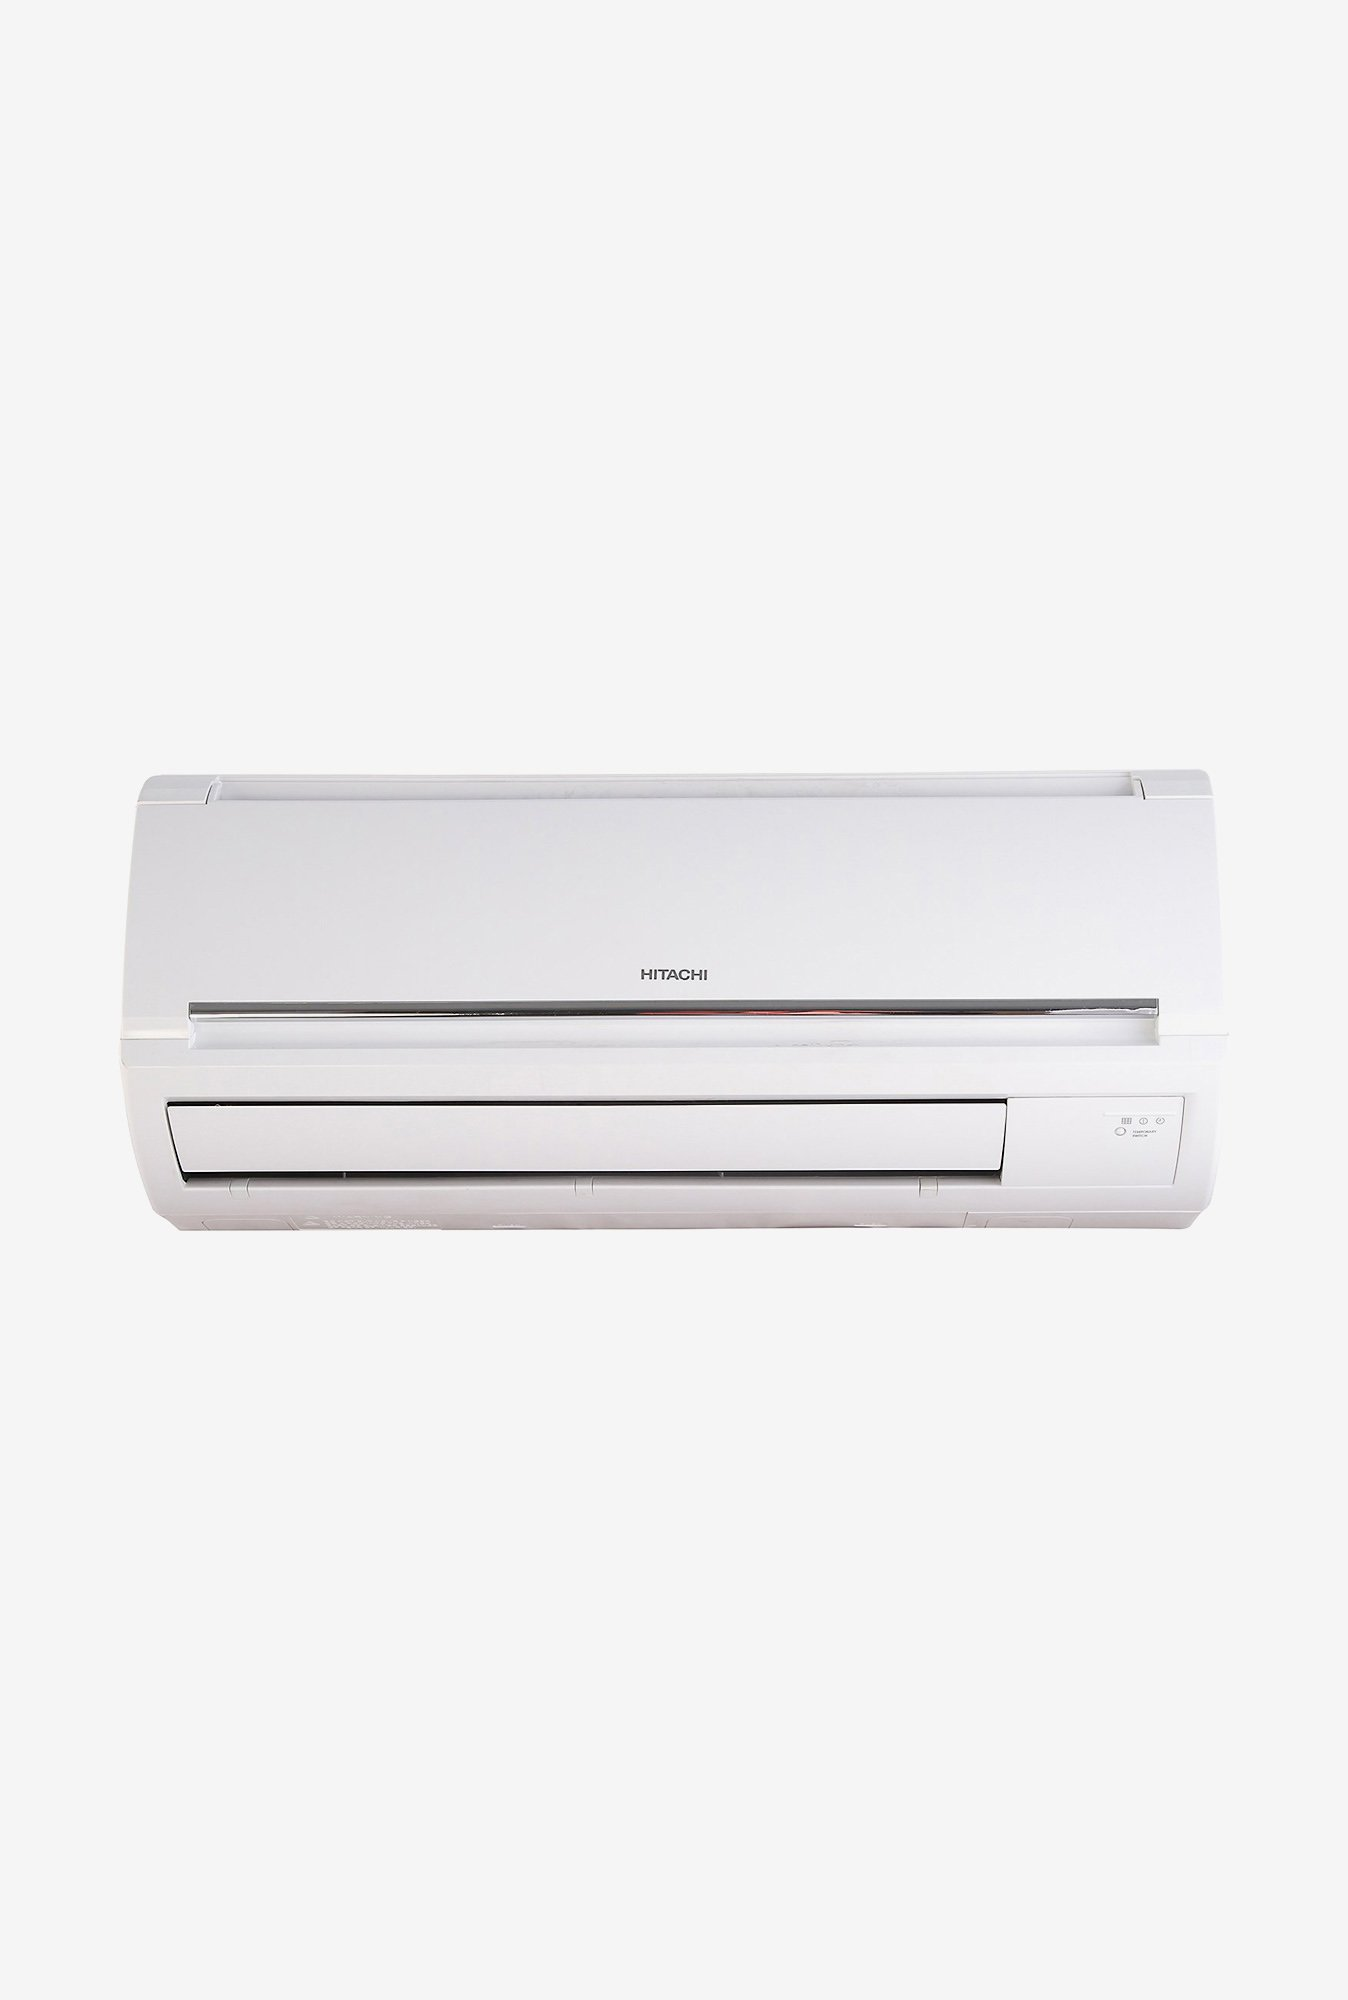 Hitachi RAU 312 HUDD KAMPA 1 Ton 3 Star Split AC (White)